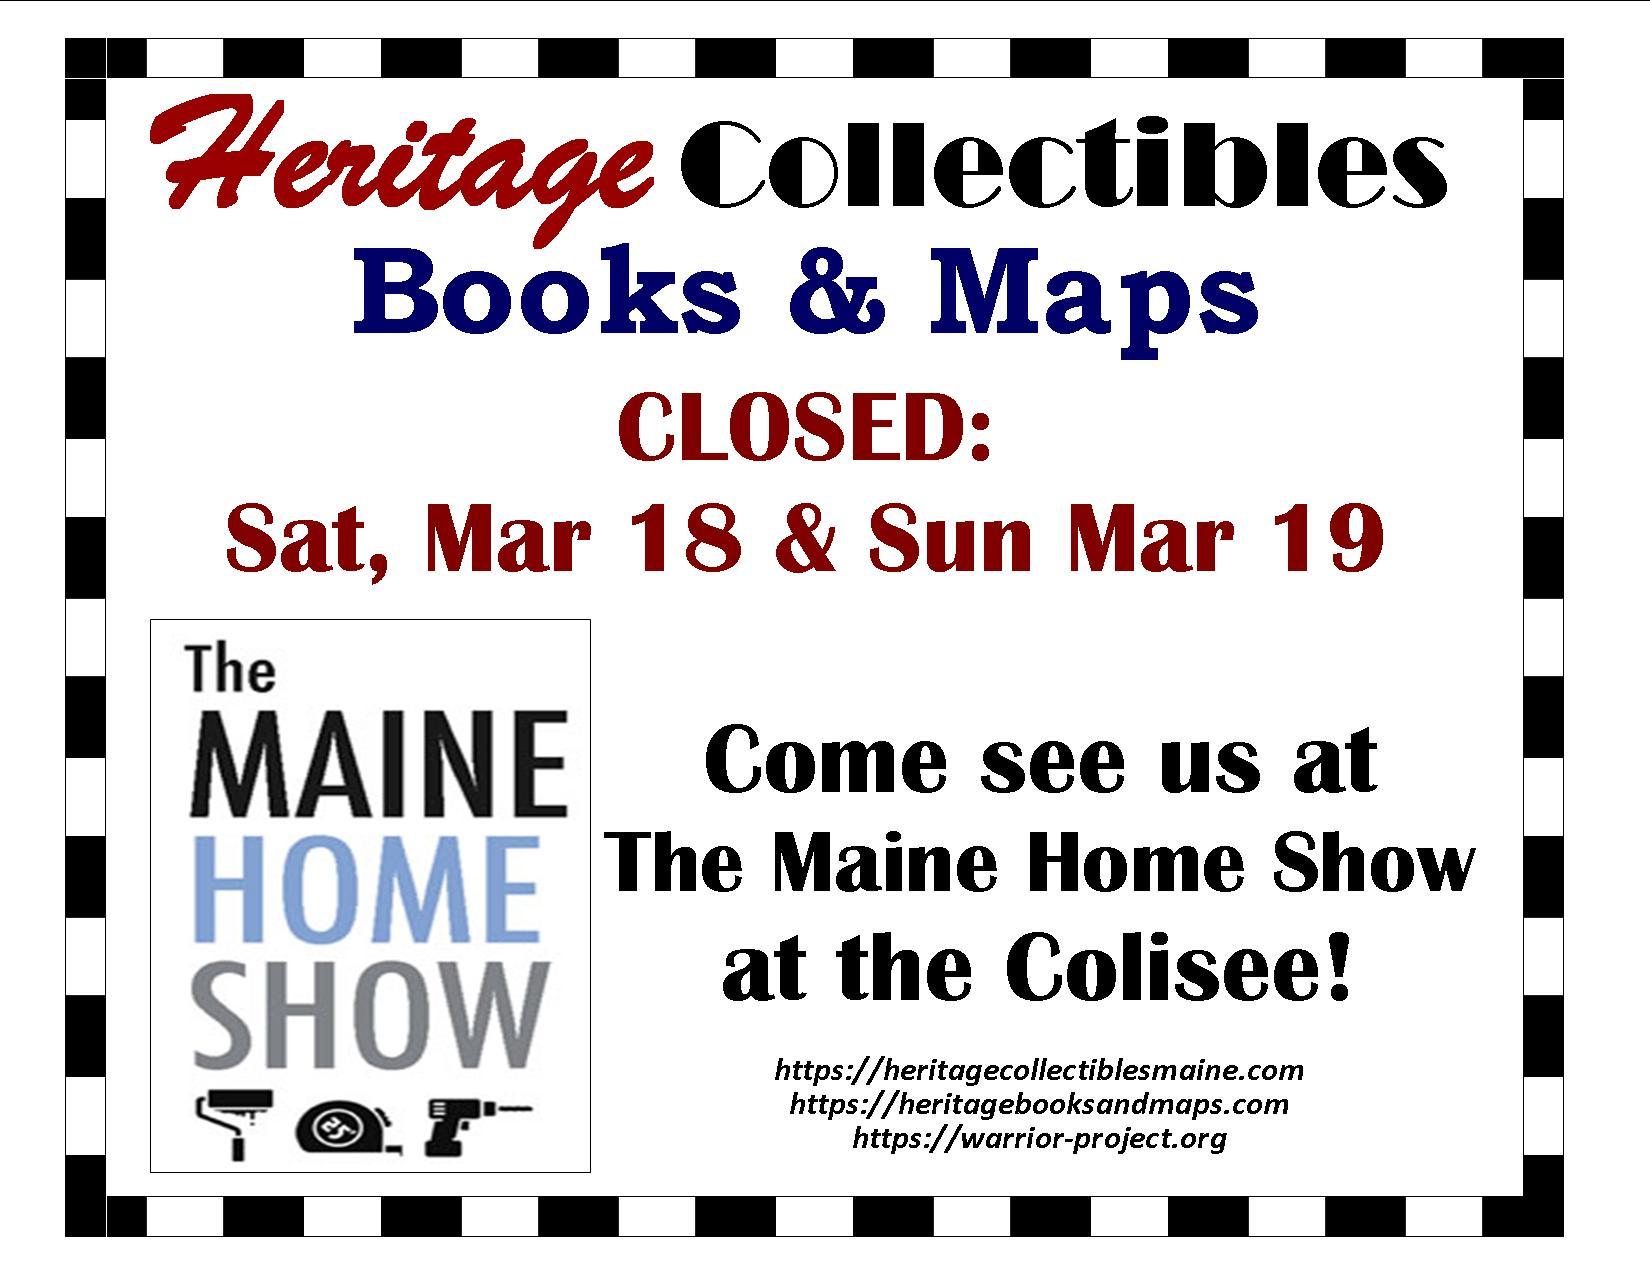 Visit Us at The Maine Home Show at the Colisee in Lewiston, March 18-19